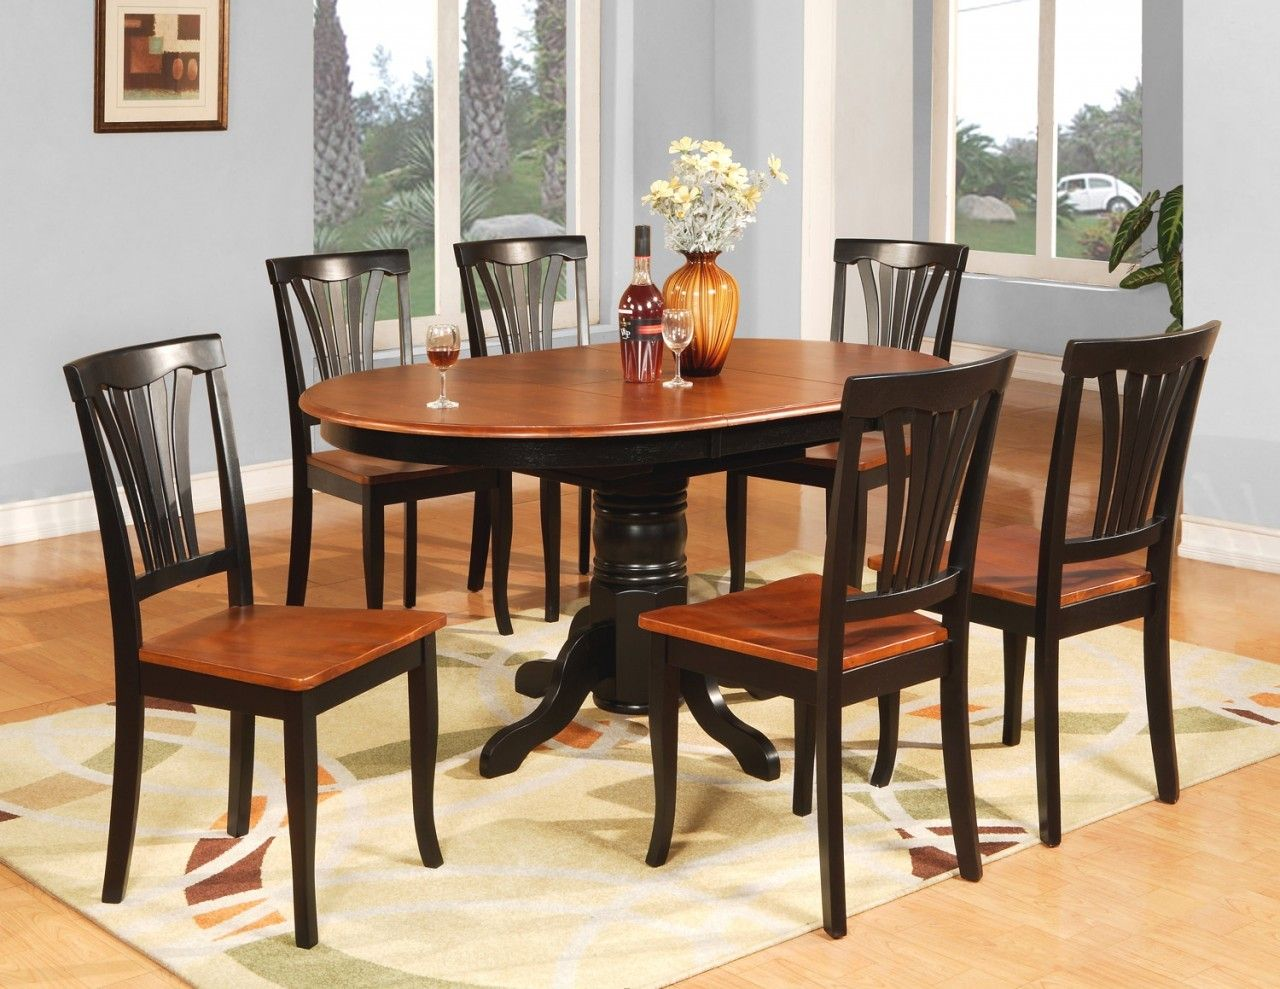 2 tone oval dining tables and chairs avon 5pc oval for Two seat kitchen table